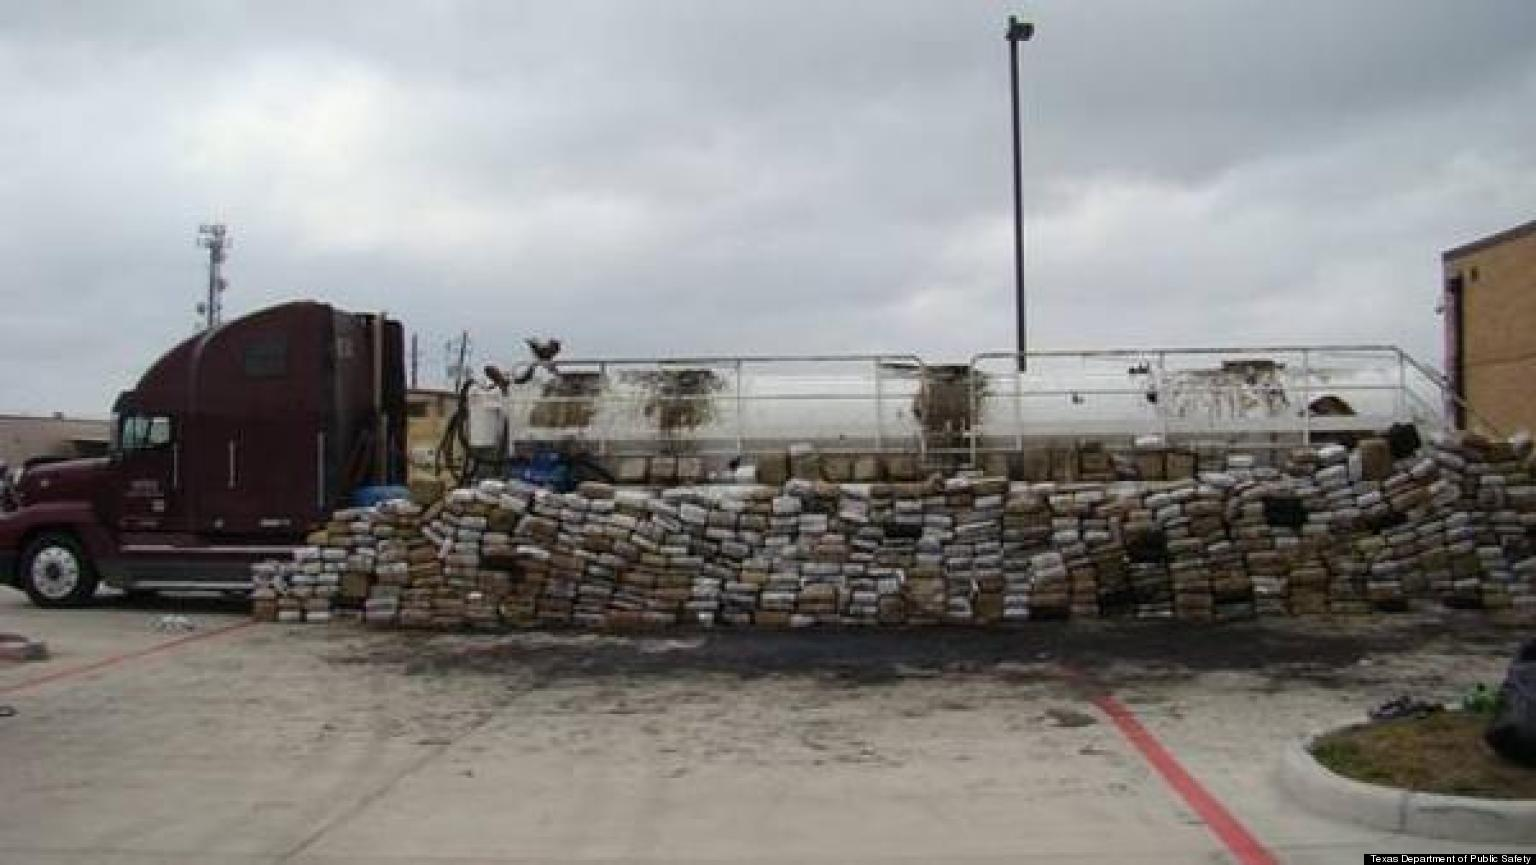 3 9 Tons Of Marijuana Found In  1 Ton Of Weed